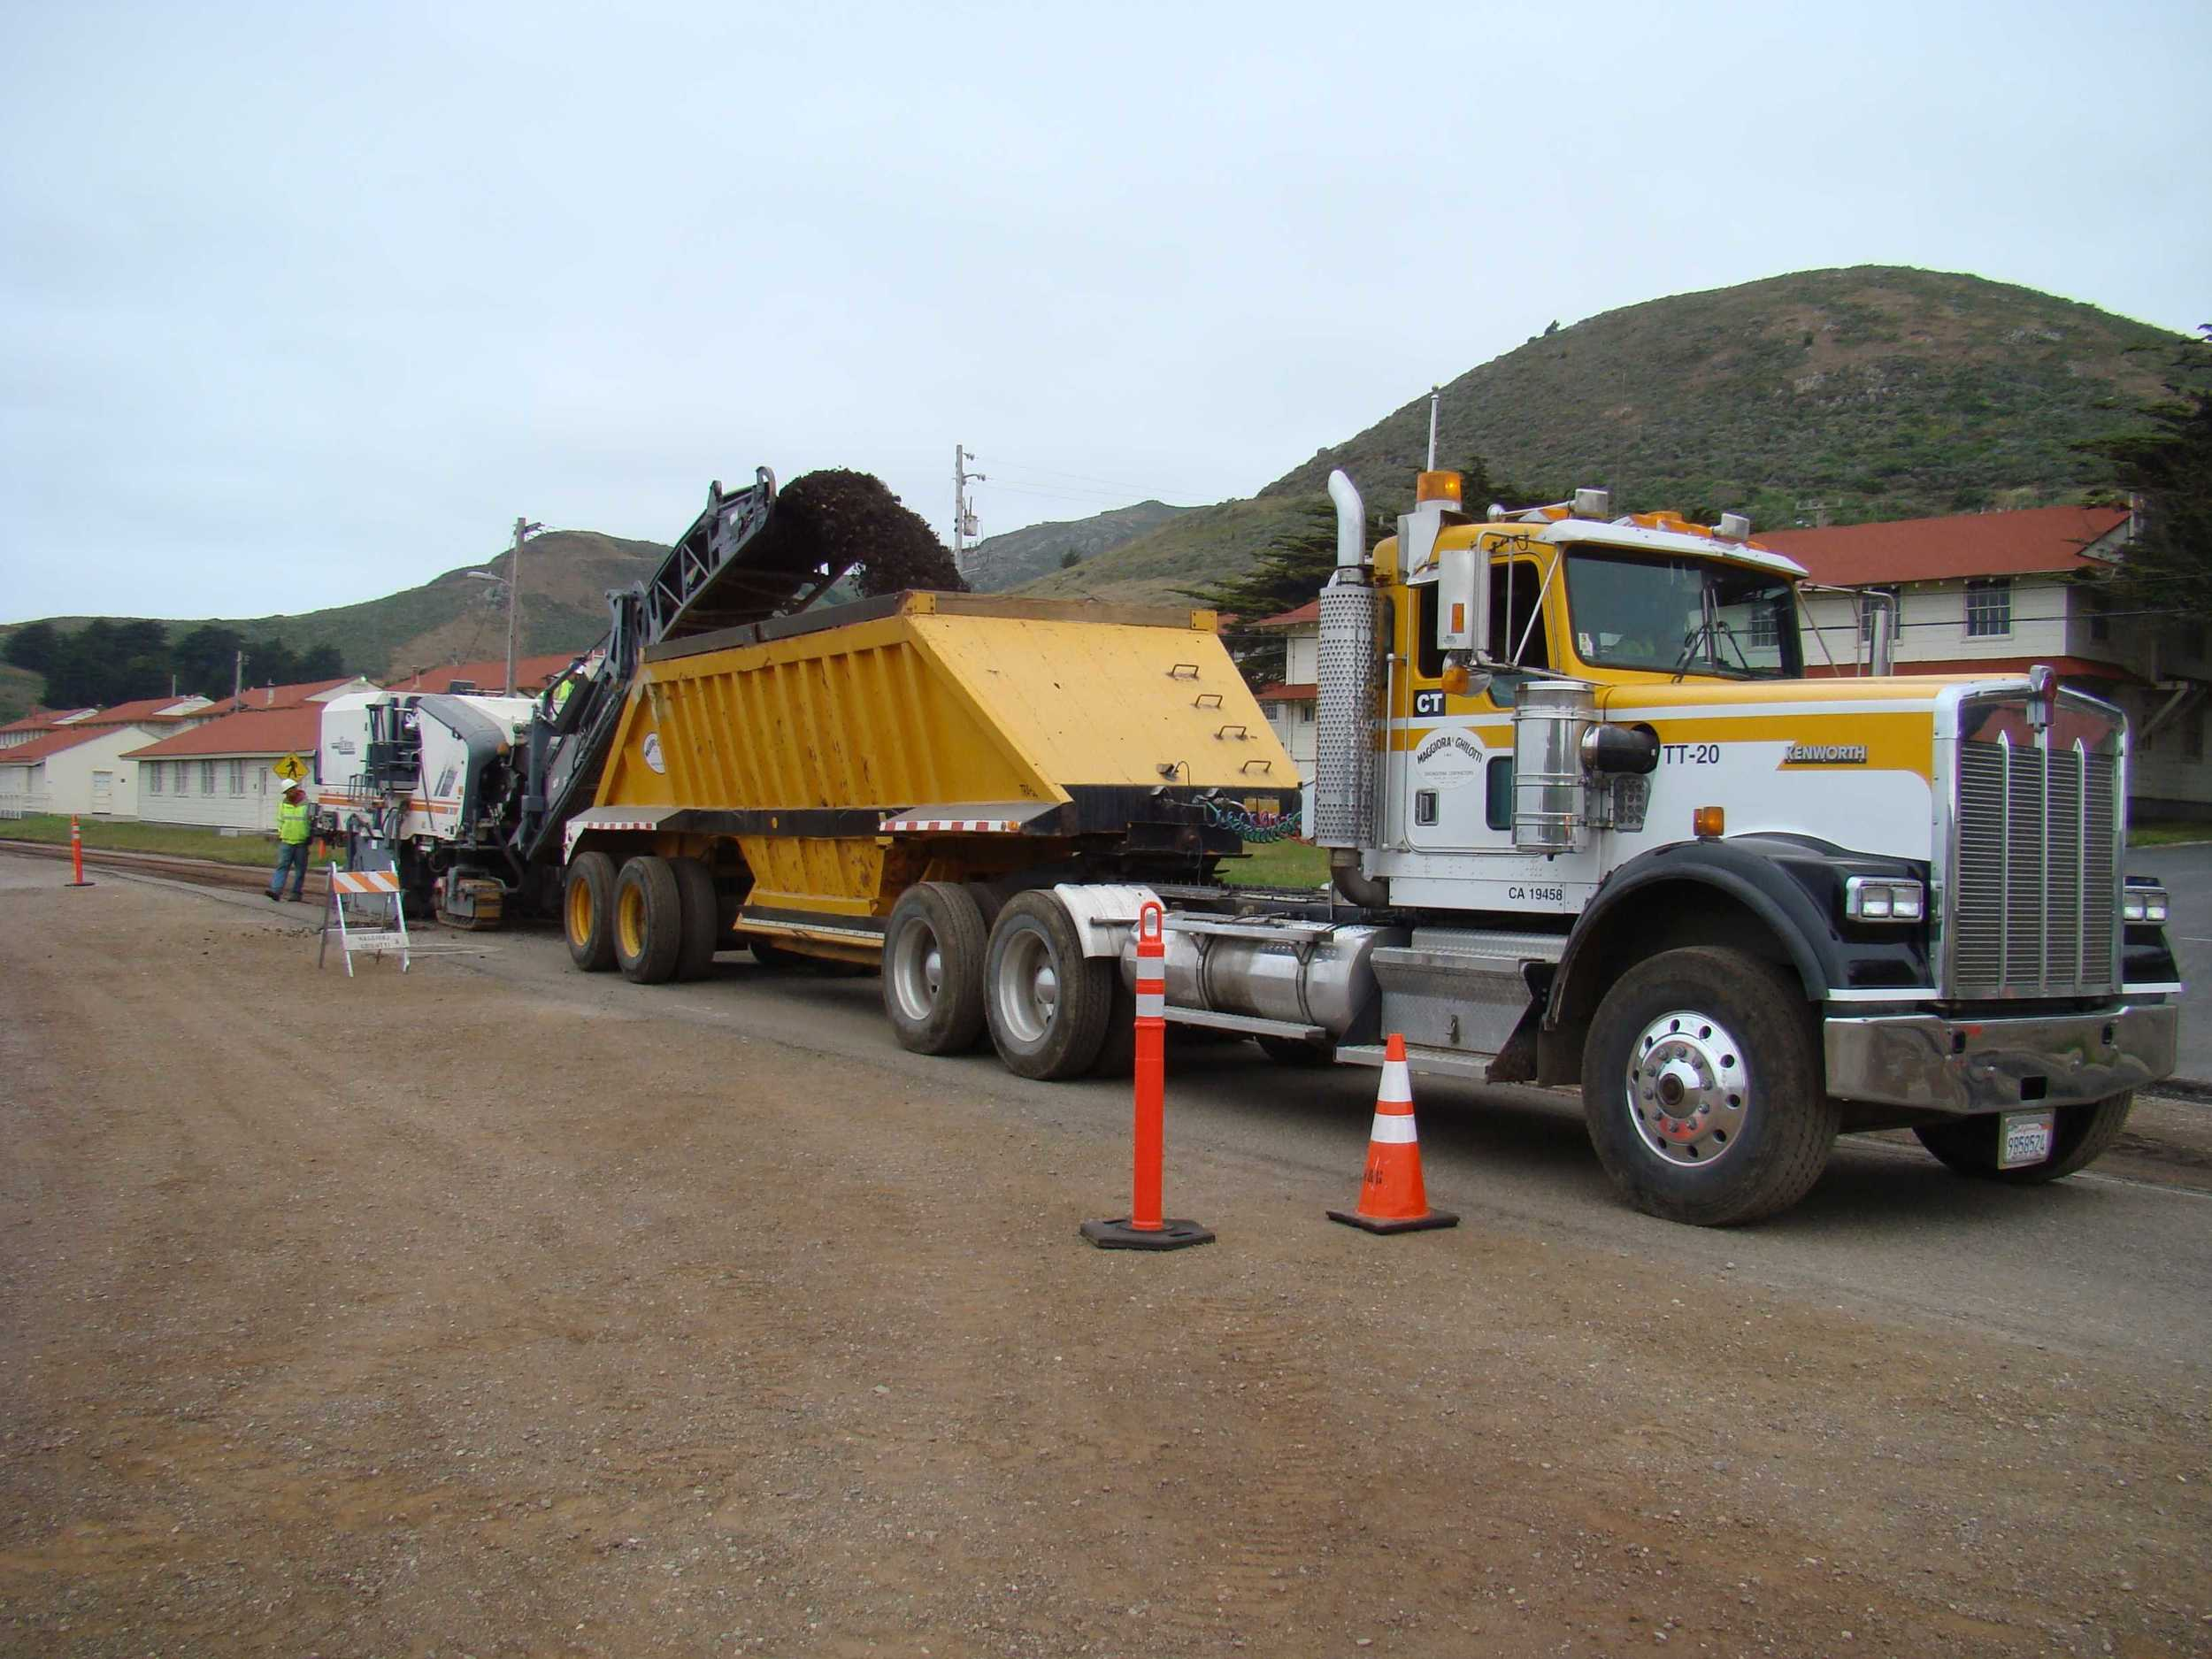 Milling Mitchell Road for Regarding and Repaving